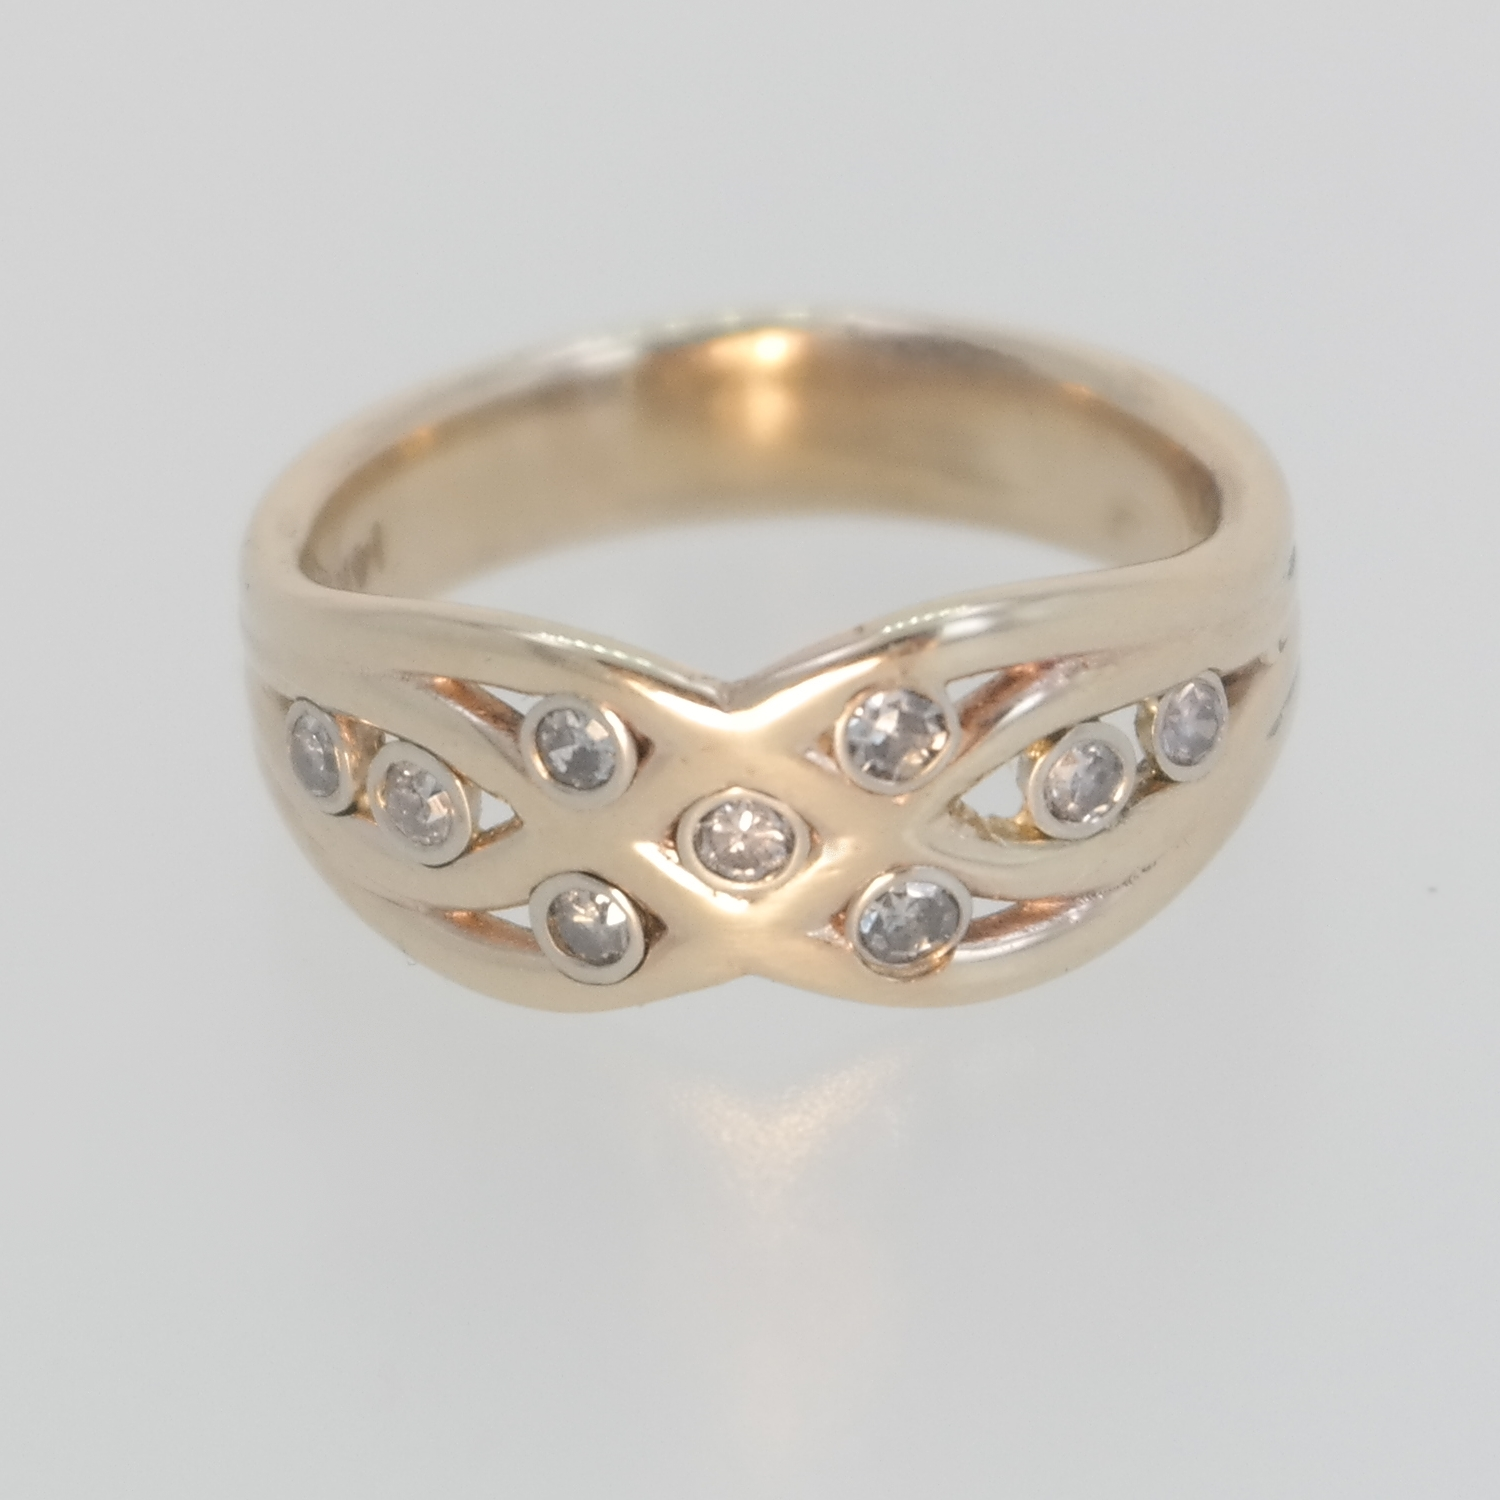 Gold ring with 9 diamonds in it